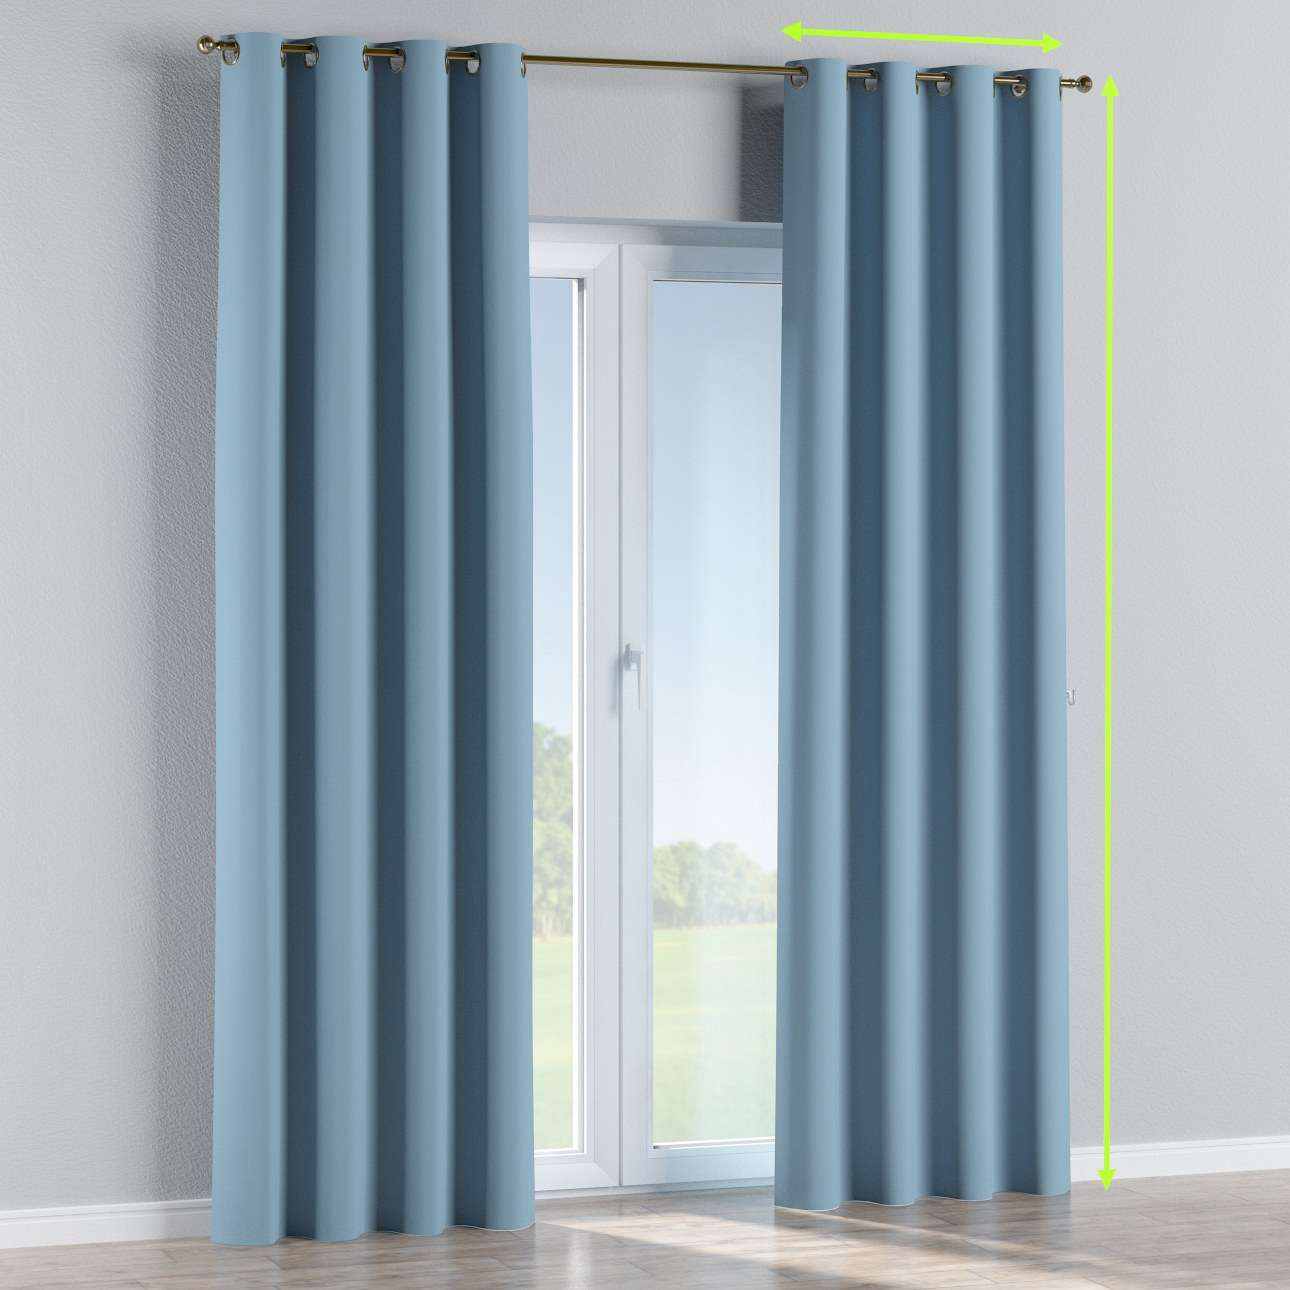 Eyelet curtain in collection Blackout, fabric: 269-08